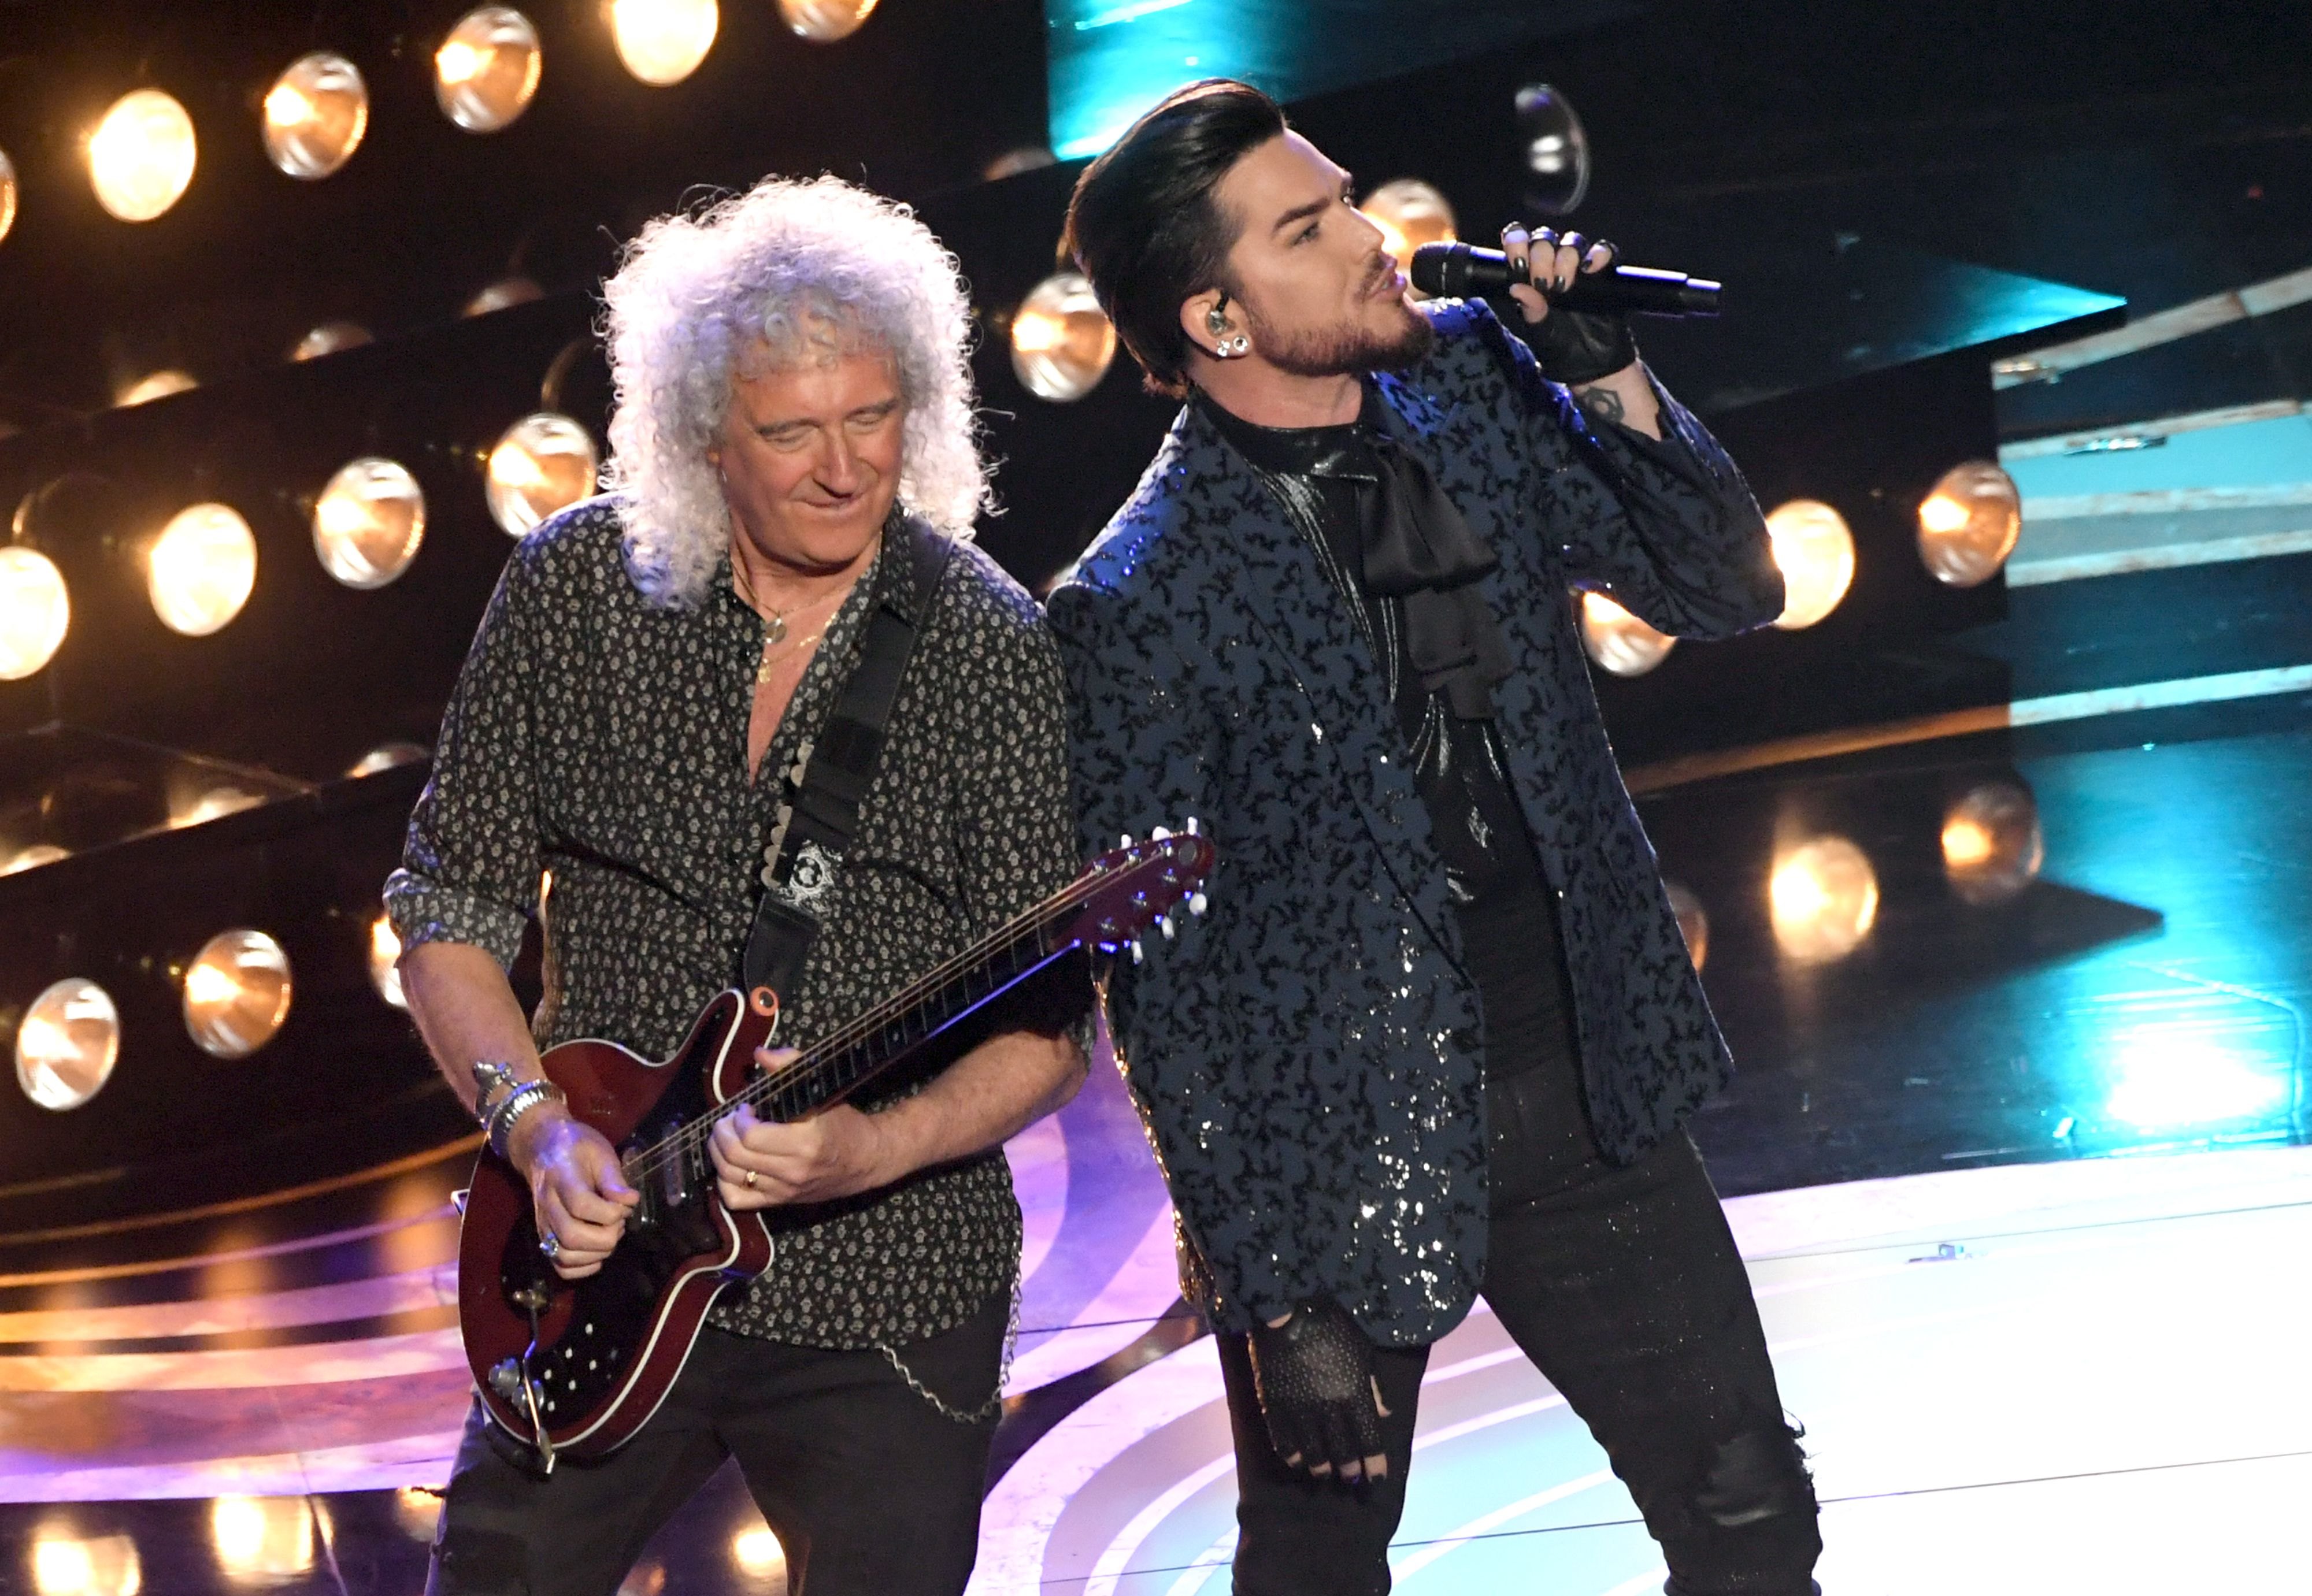 Adam Lambert makes an impression on Rhapsody Tour with Queen